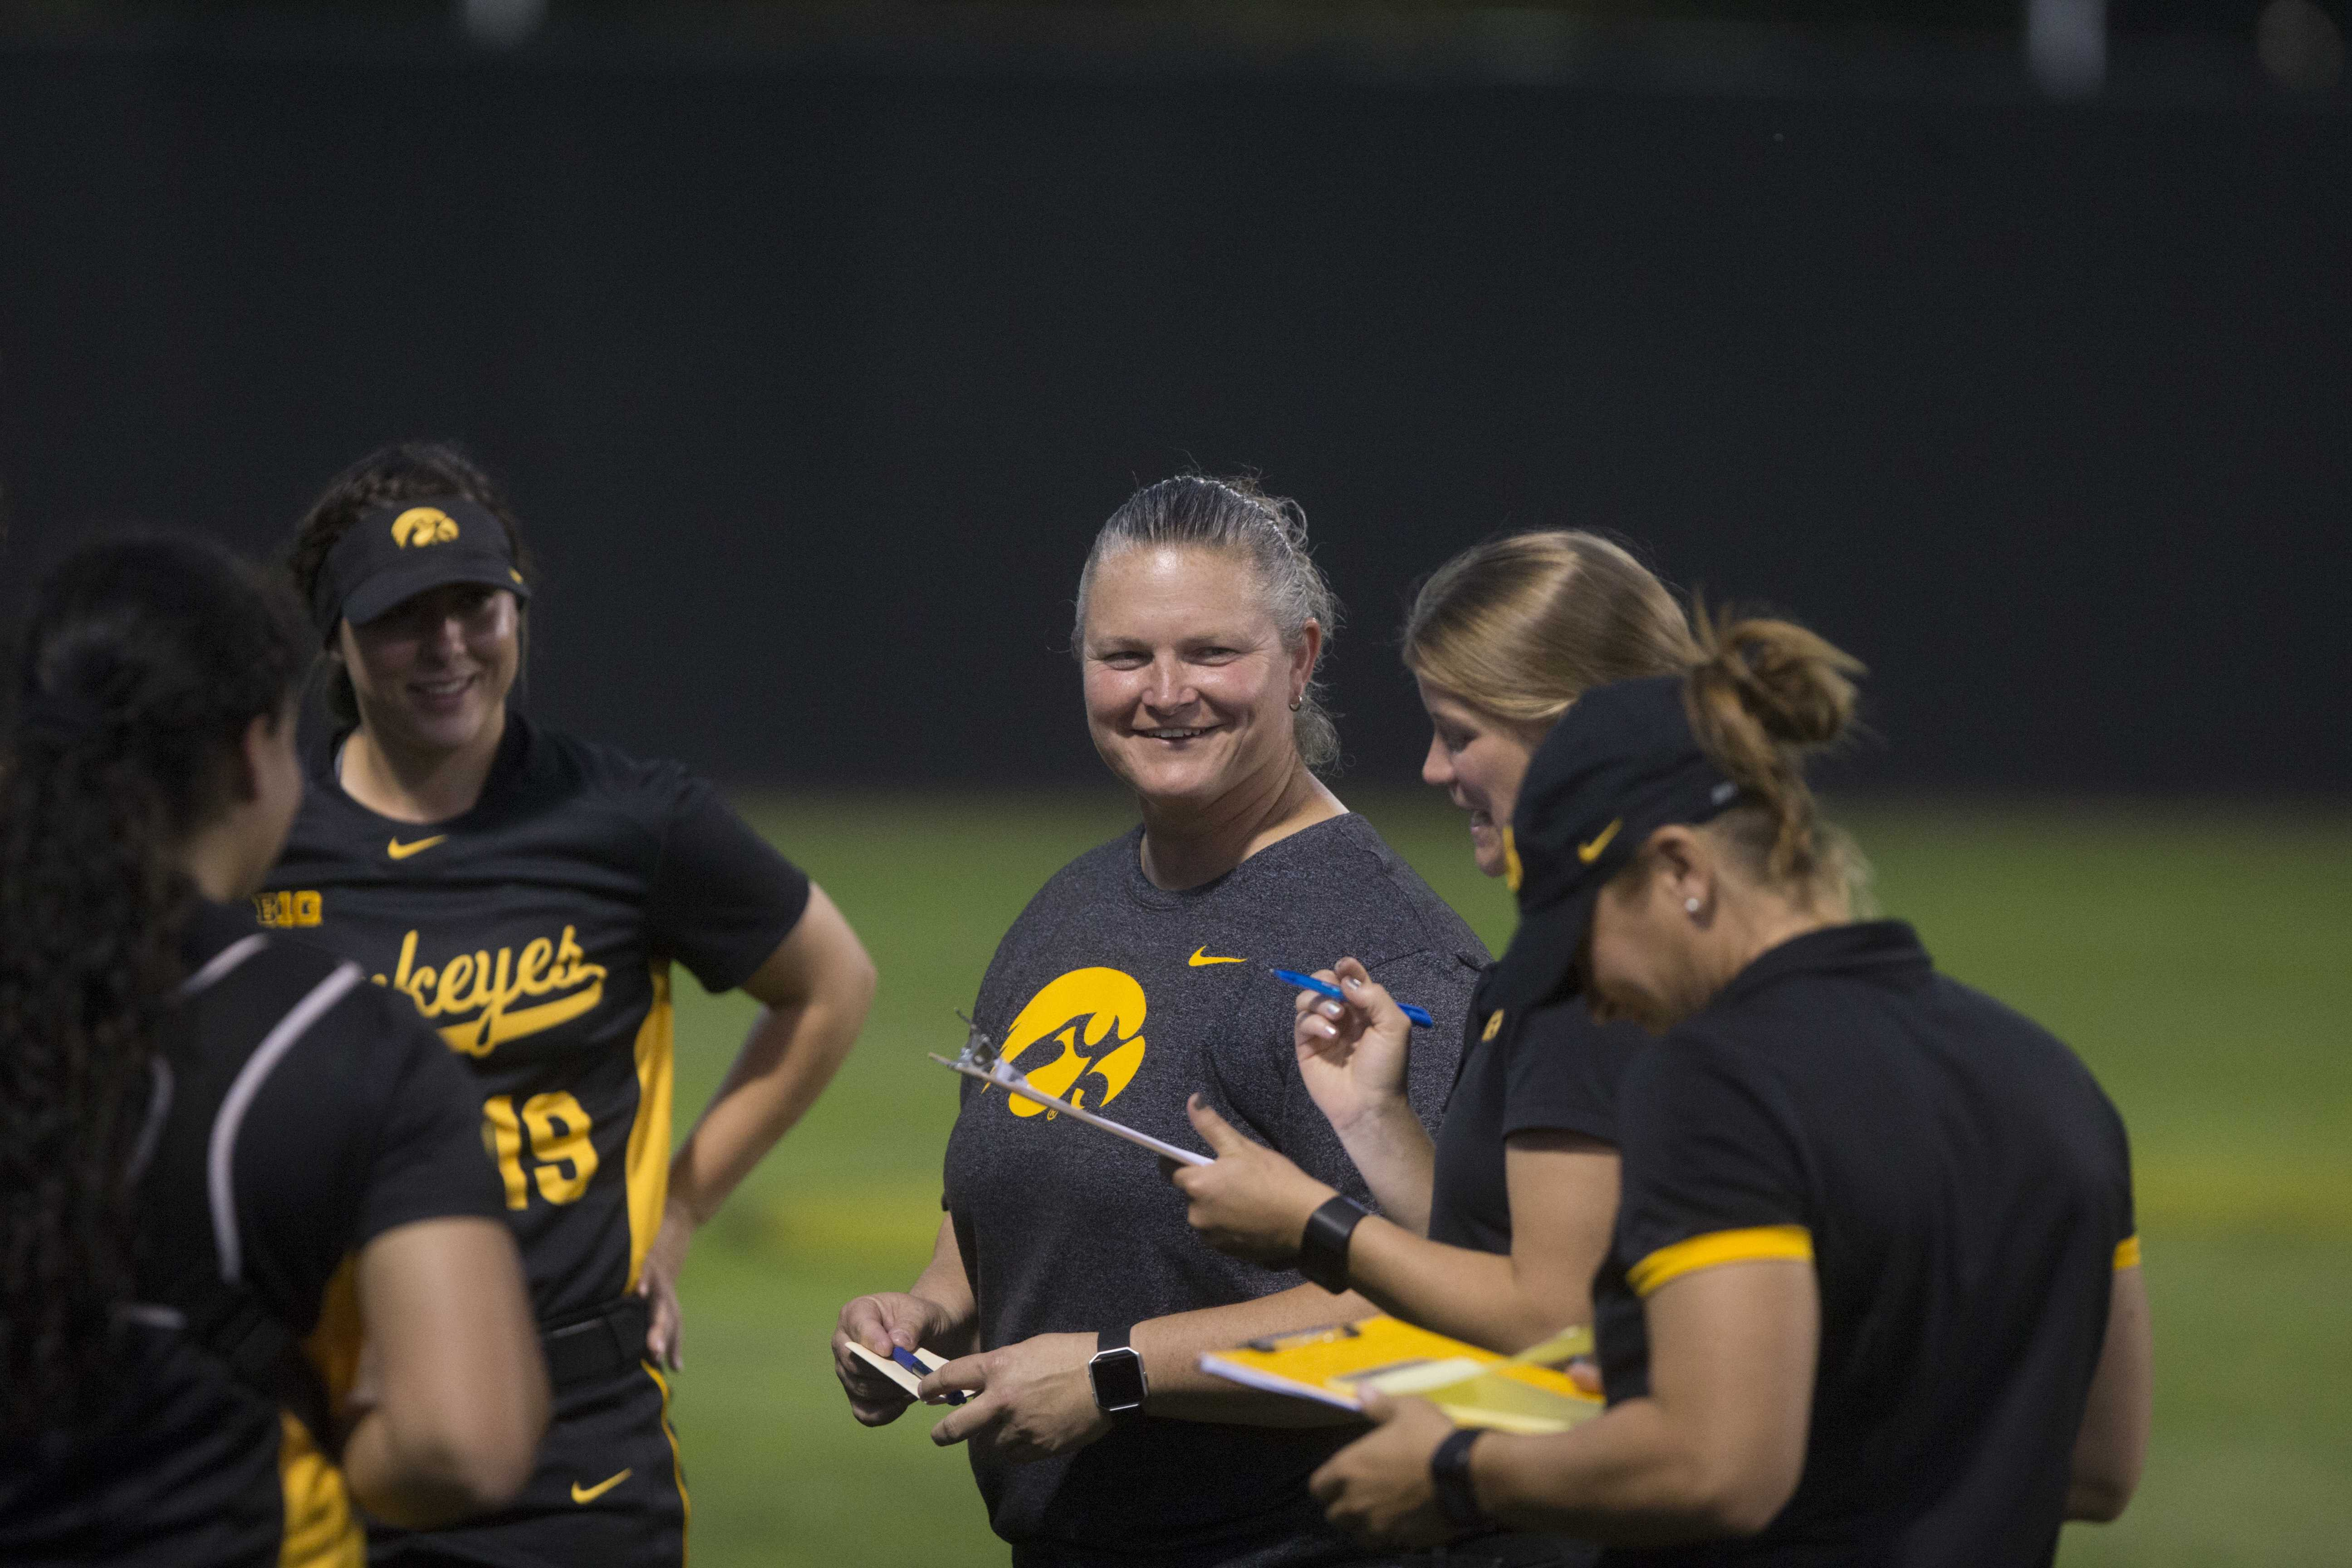 Iowa head coach Marla Looper is pleased with the Hawkeyes win at the Pearl Field Hawkeye Softball complex on Friday, Sept. 22, 2017. Hawkeyes defeated Kirkwood Community College 5-3. (Ashley Morris/The Daily Iowan)